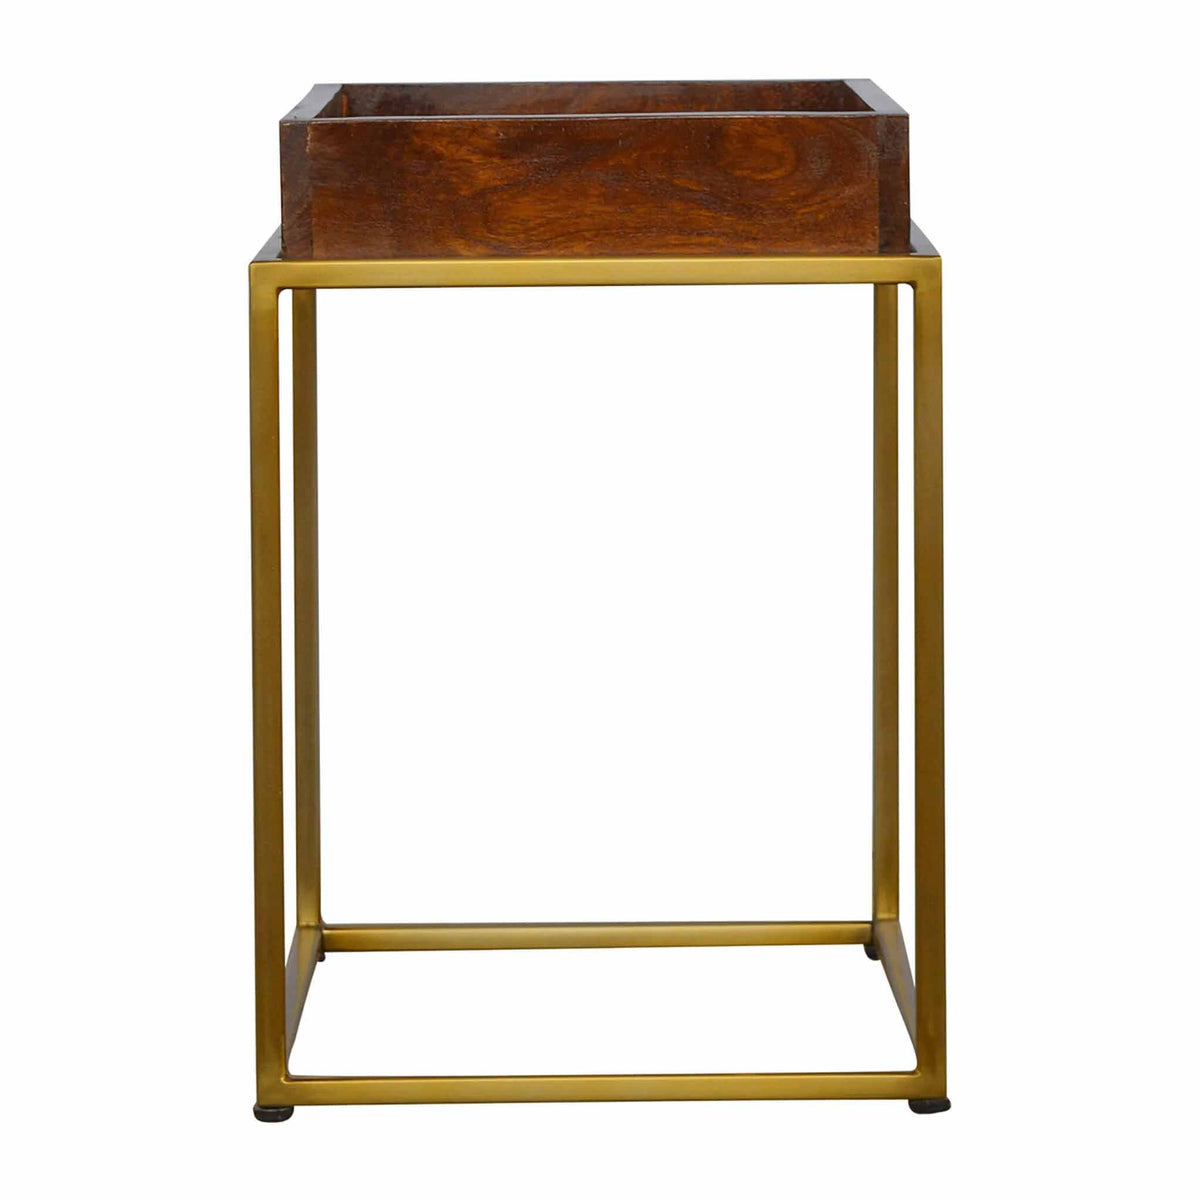 Side view of Artisan Chestnut Butler Tray Table with Gold Base